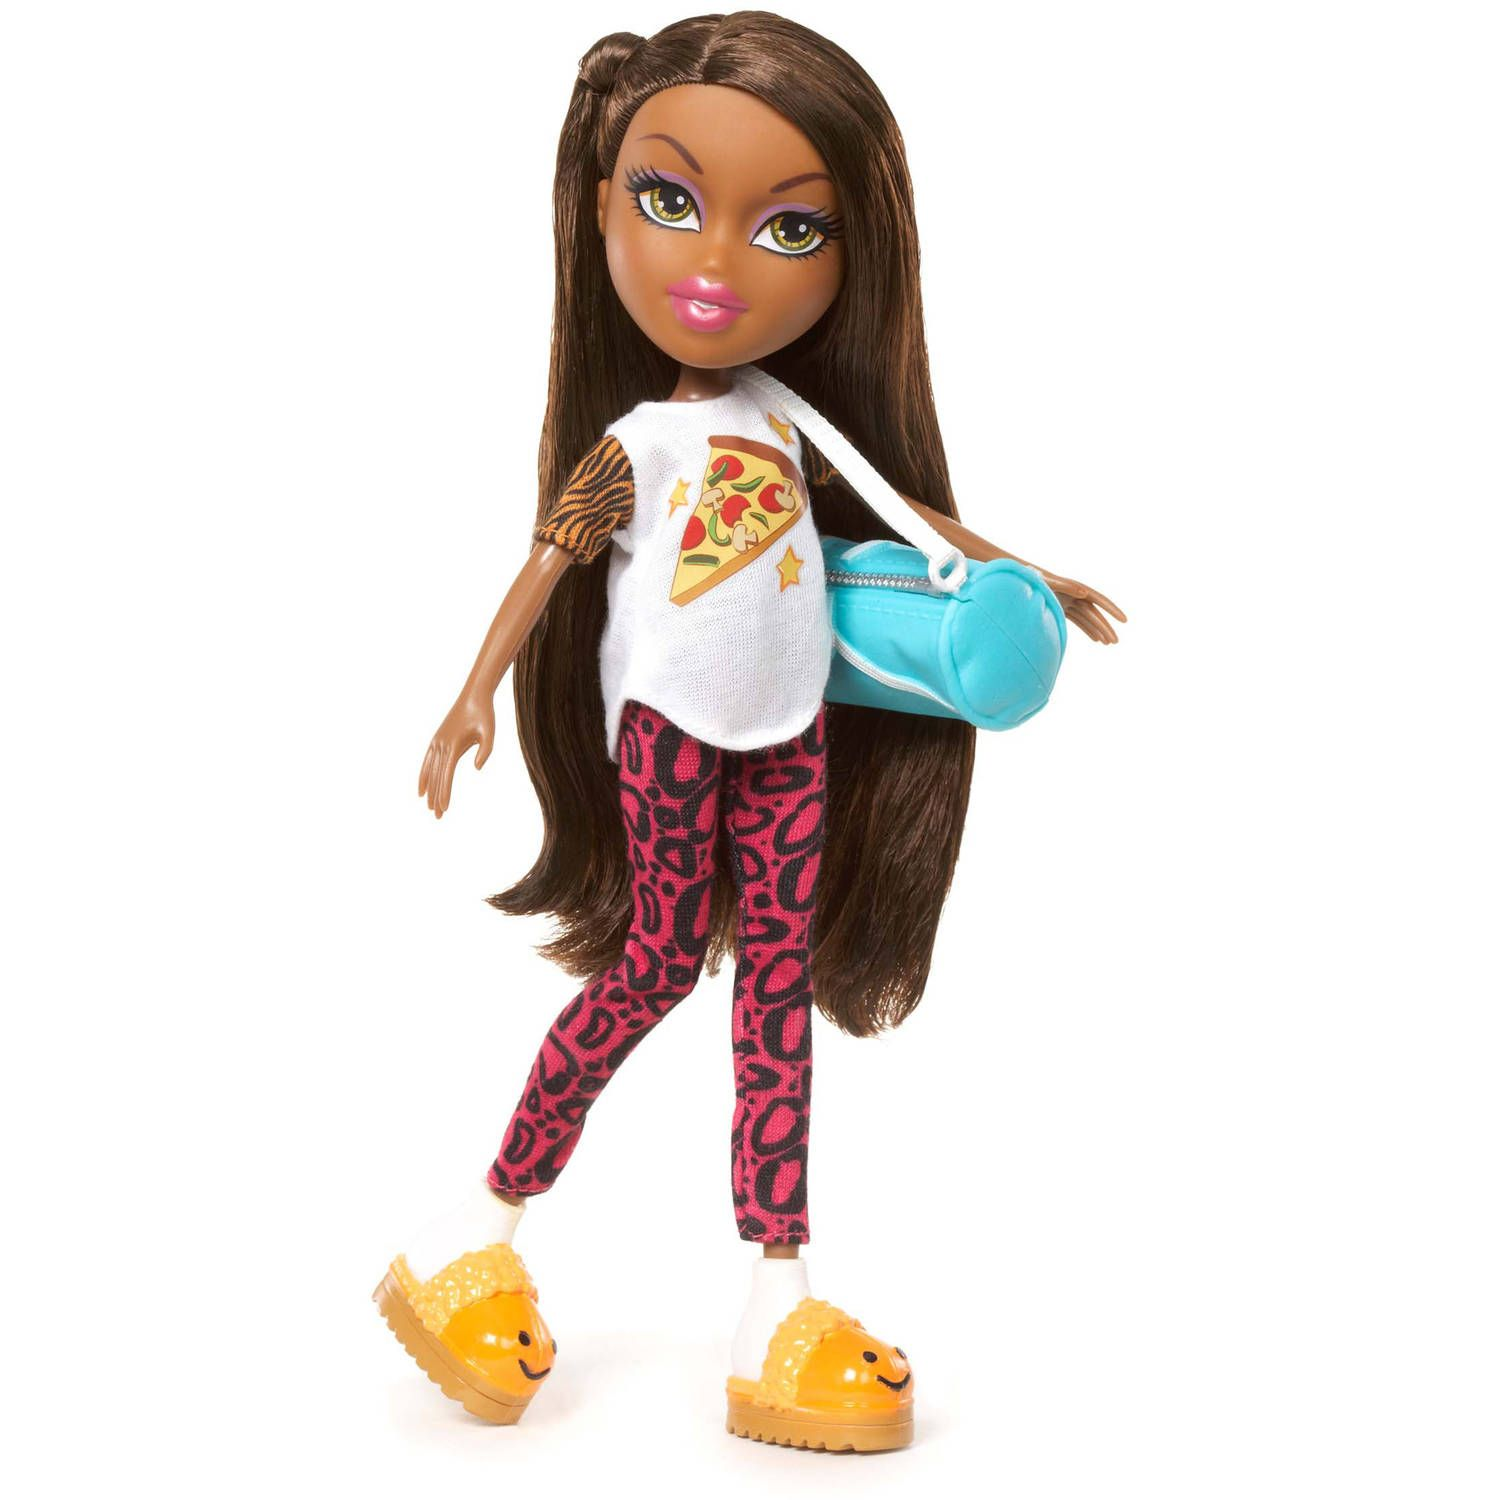 Uncategorized Bratz Doll Images bratz sleepover party doll sasha walmart com toys pinterest com